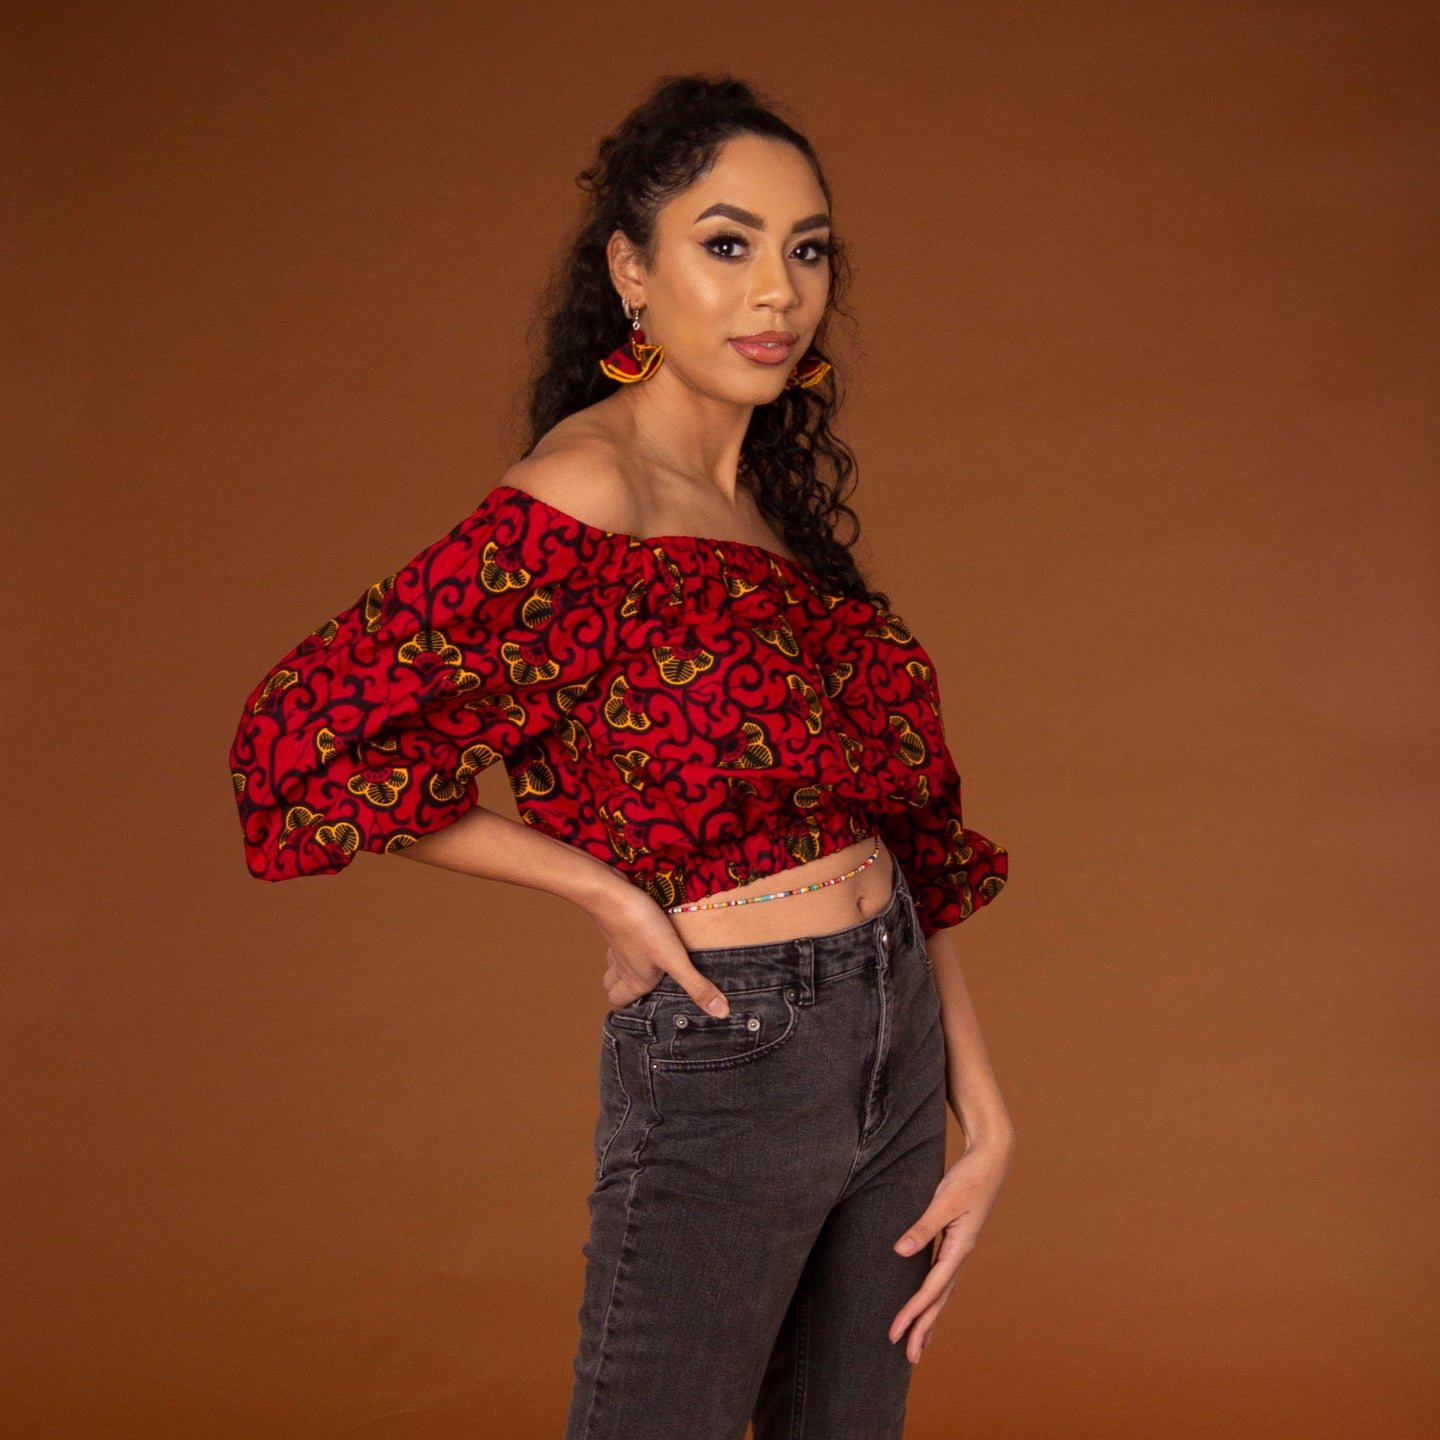 Off-shoulder African print crop top with three-quarter balloon sleeves and elasticated waist, arms and neckline in red and yellow ankara wax print